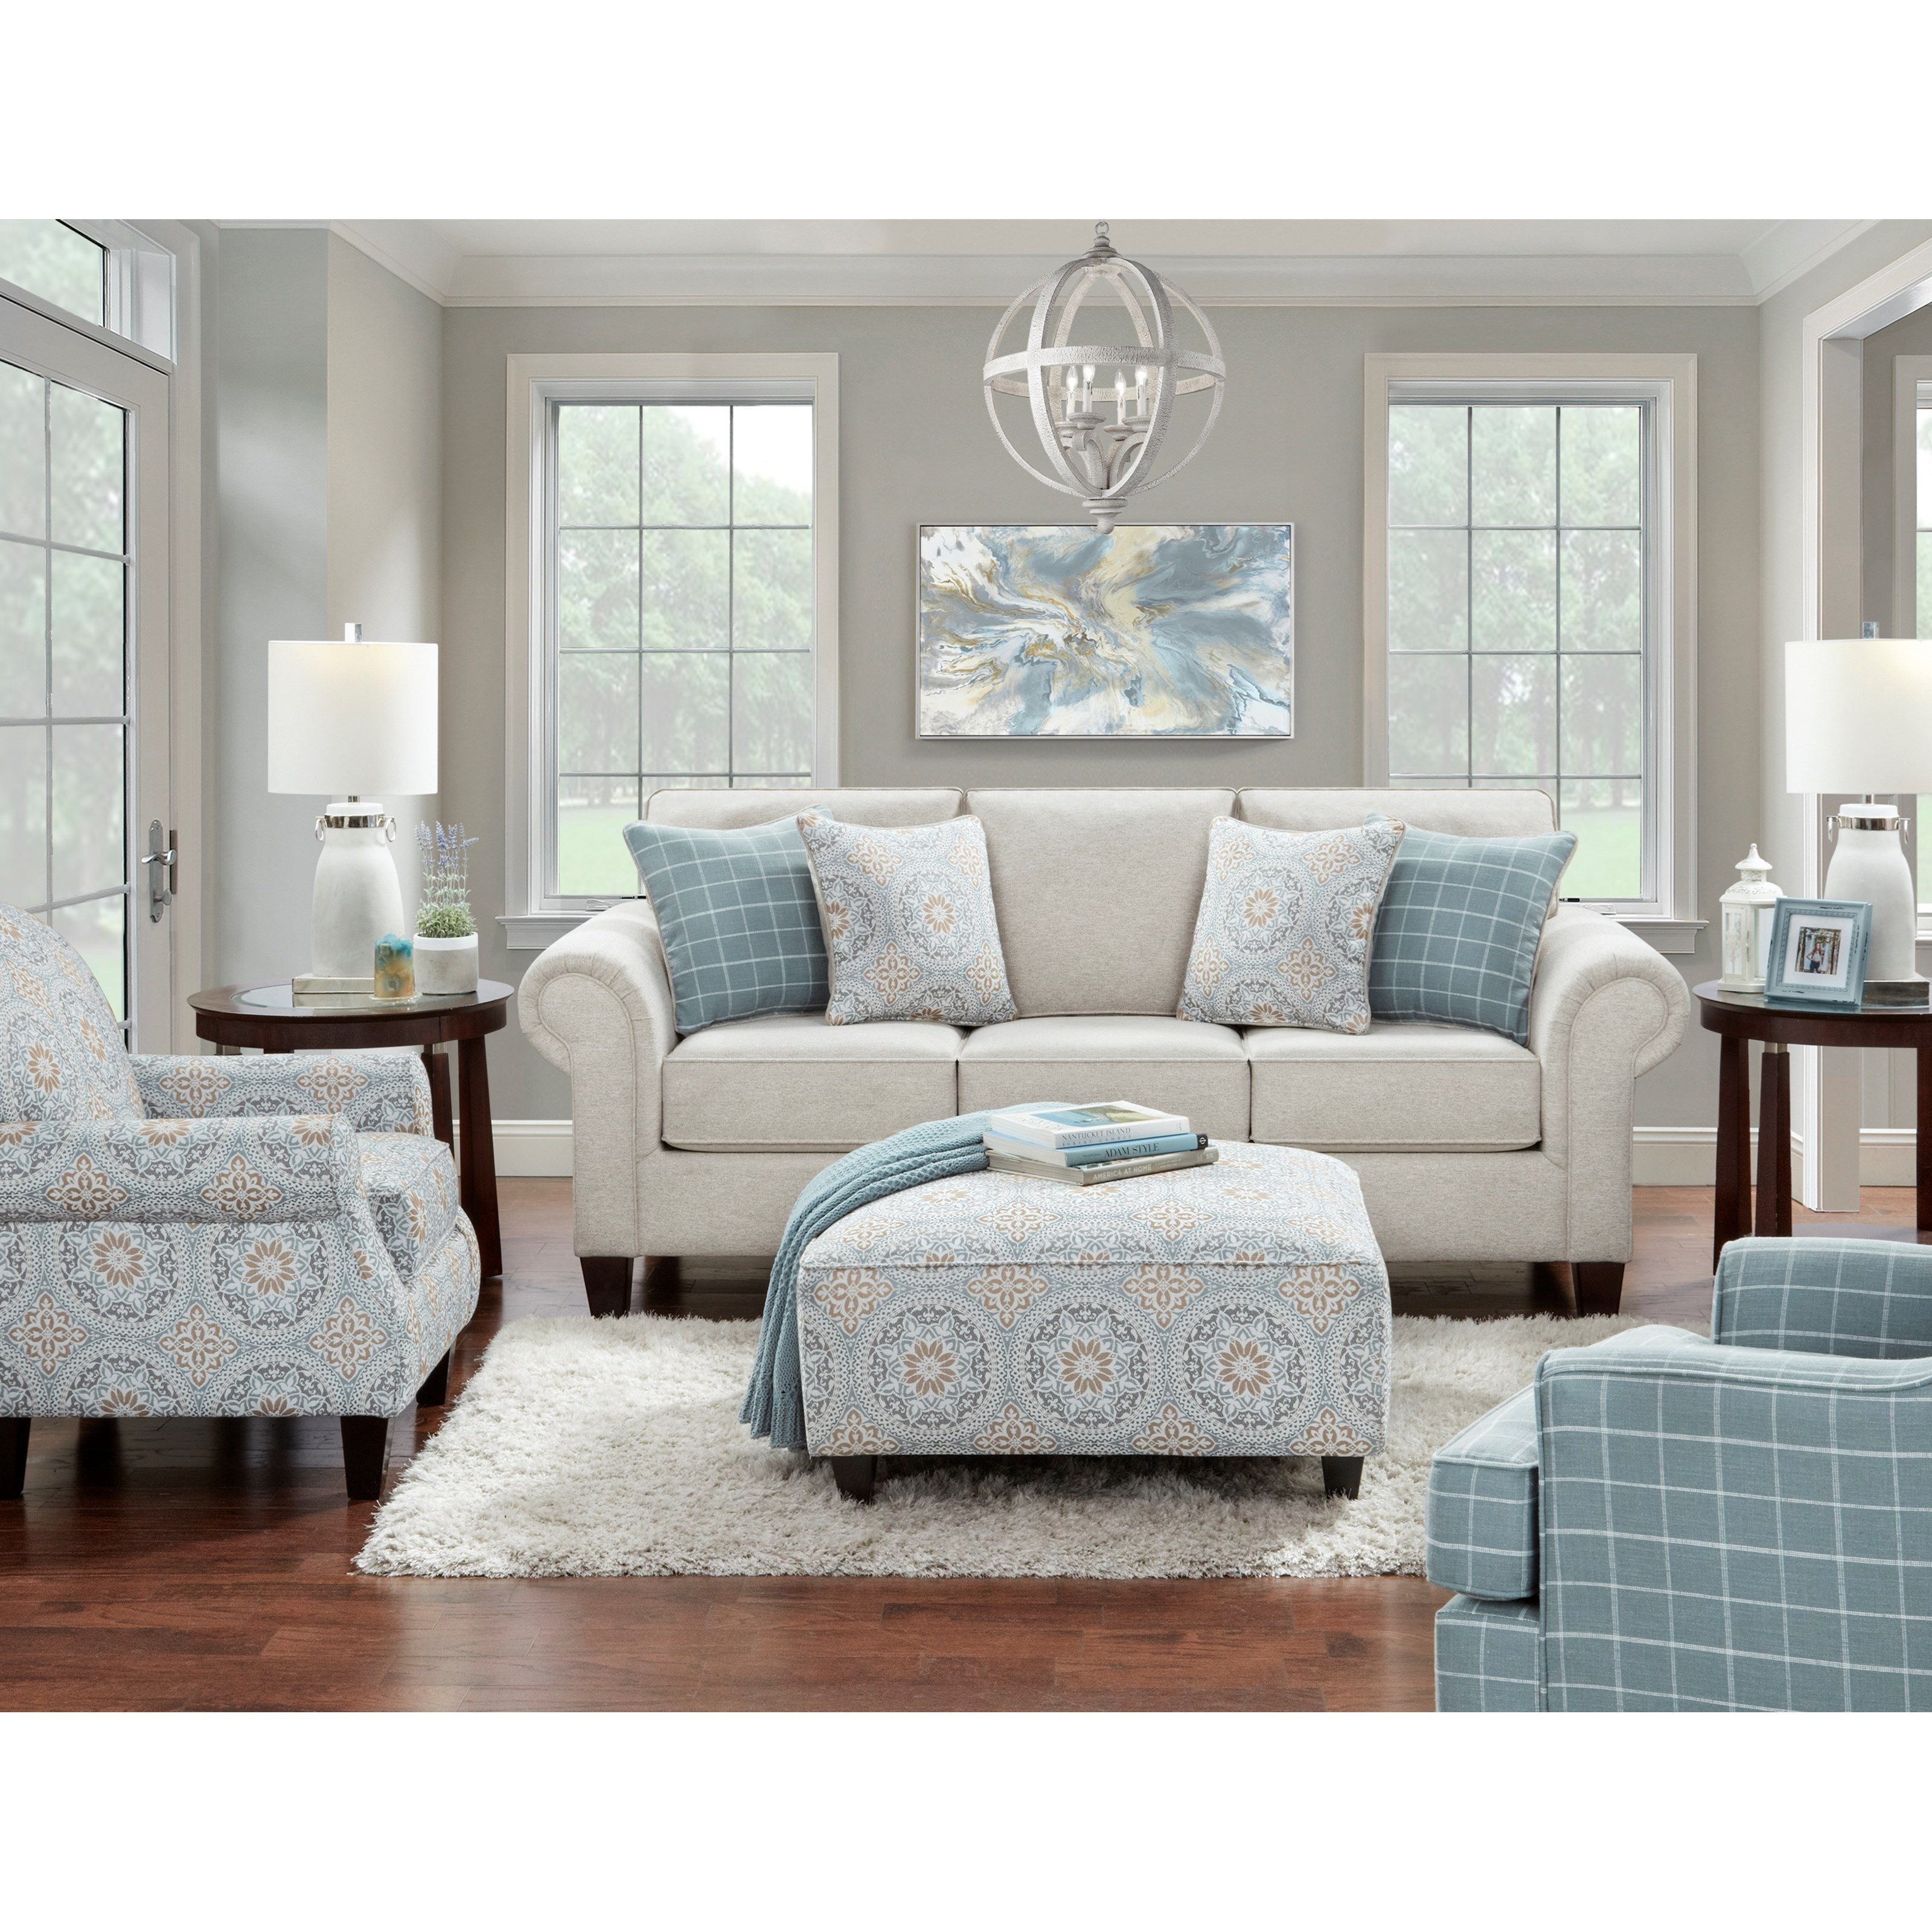 3100 Living Room Group by Fusion Furniture at Miller Waldrop Furniture and Decor